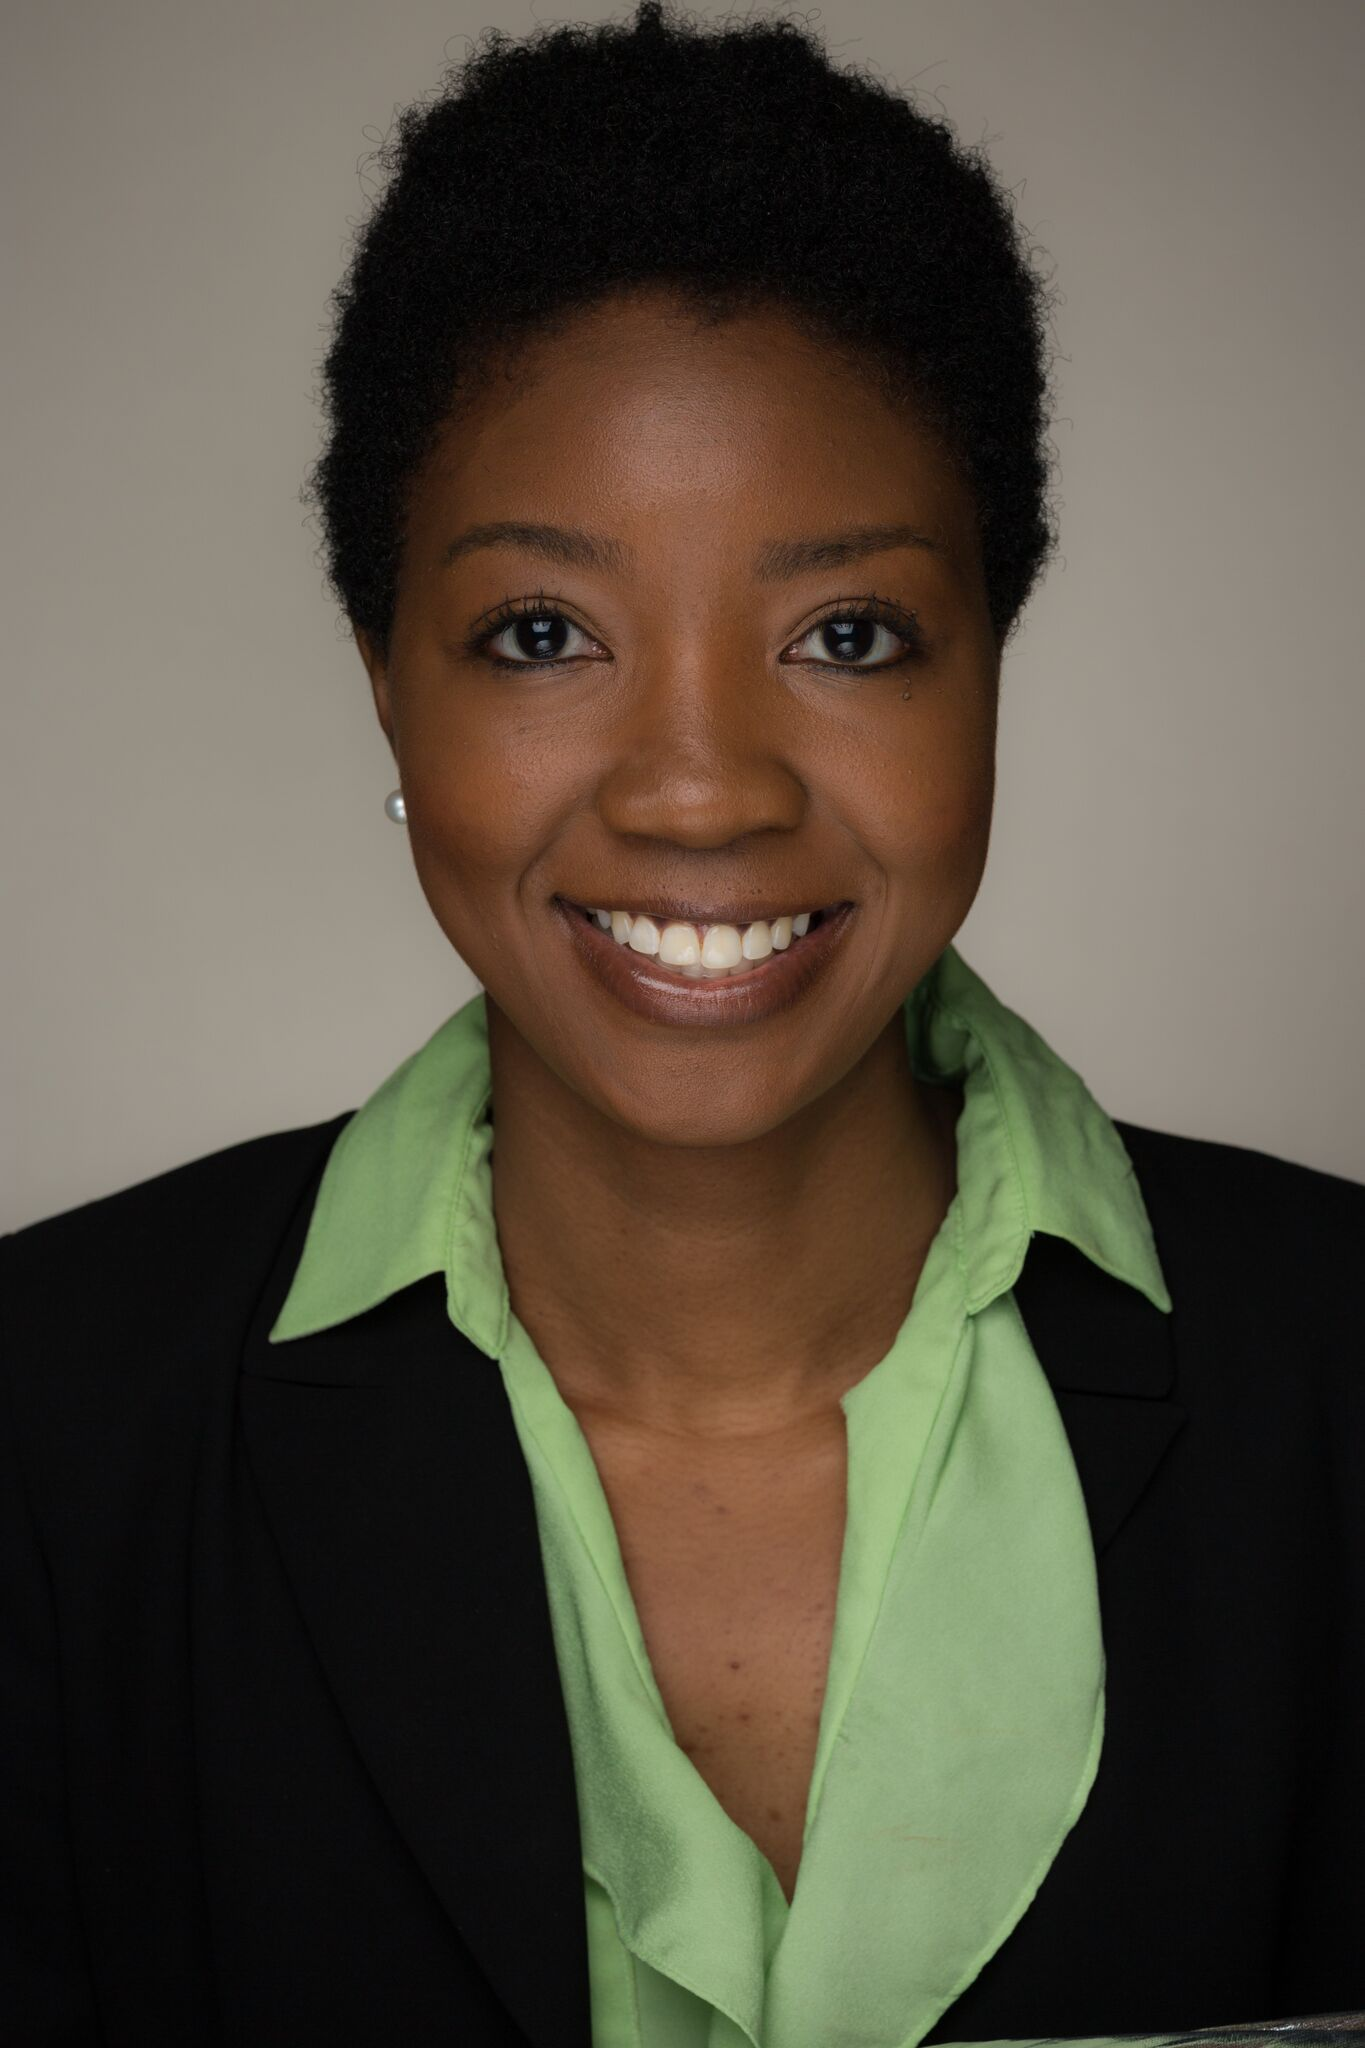 Jasmine Cannon / Editor, Junior Editor, Assistant Editor, Media Manager / NYC